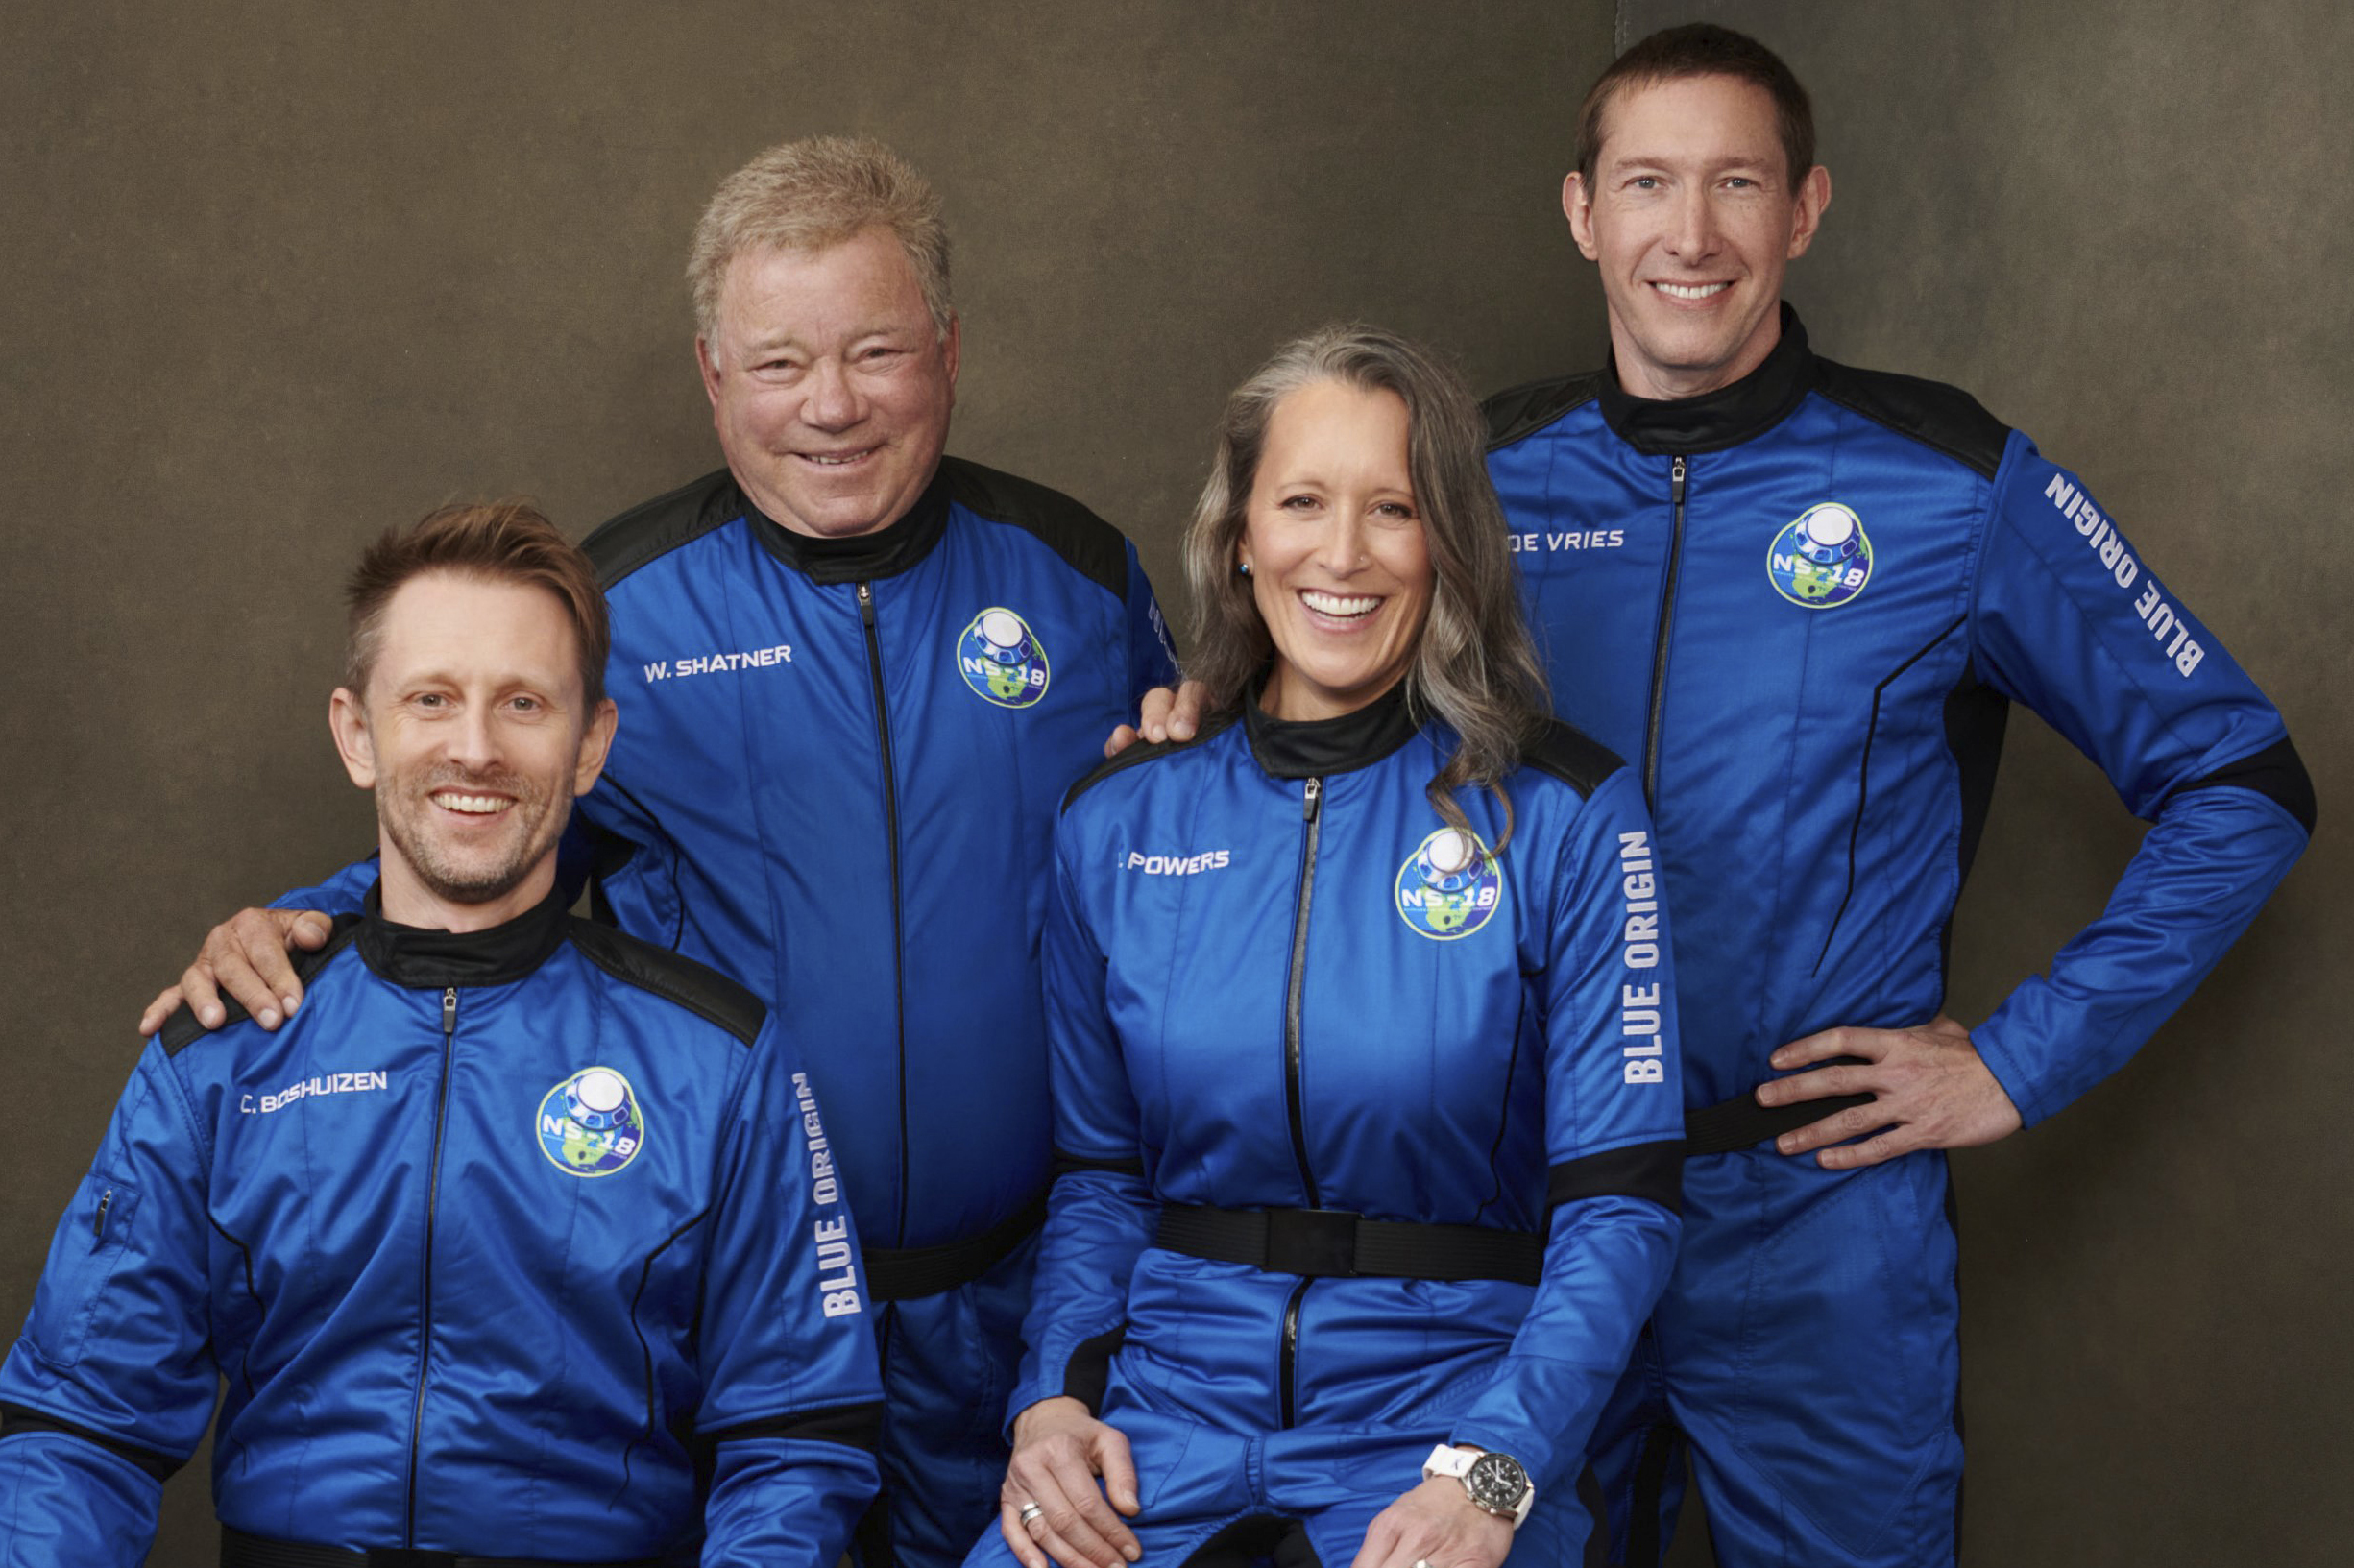 Watch LIVE: William Shatner & crew blast to the edge of space and back to Earth 6